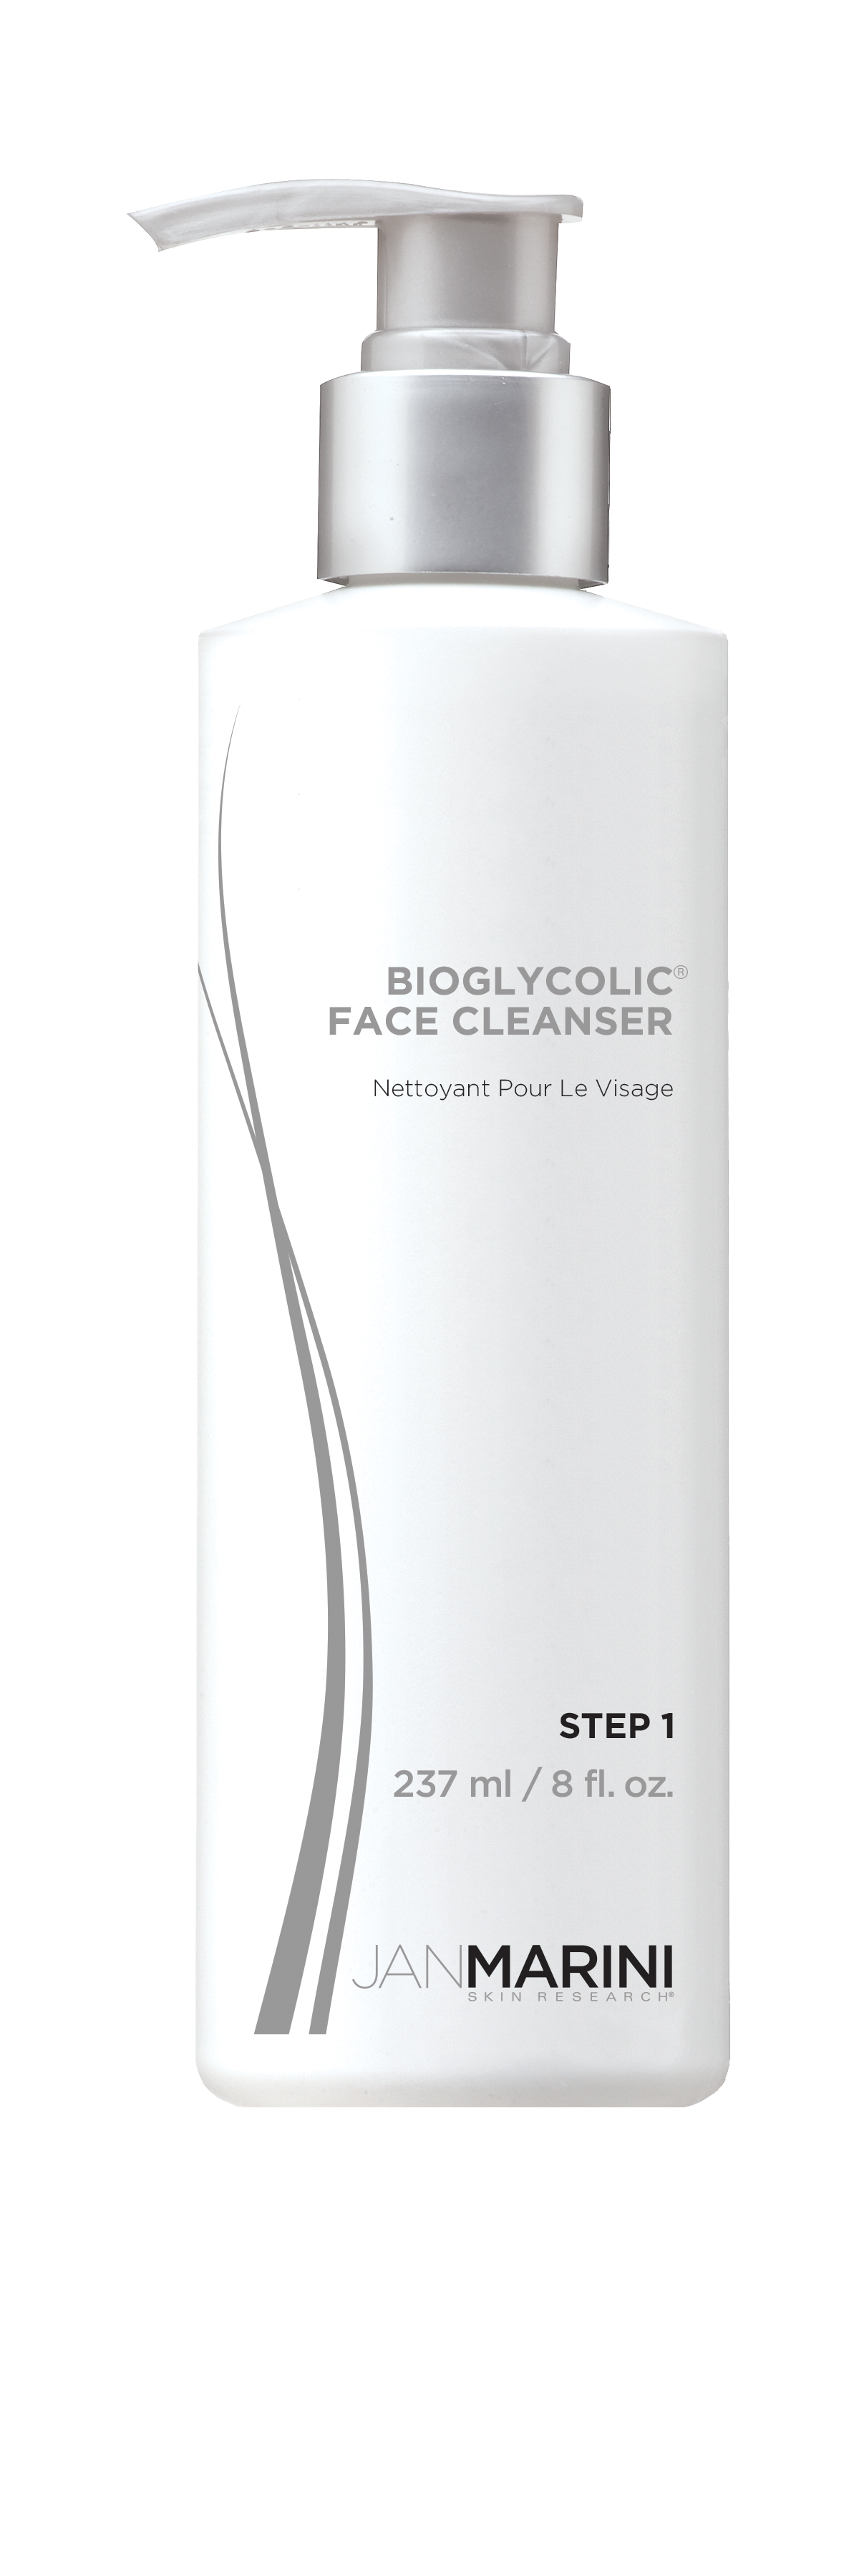 Product Images_HiRes_Bioglycolic_Face_Cleanser_HiRes.png